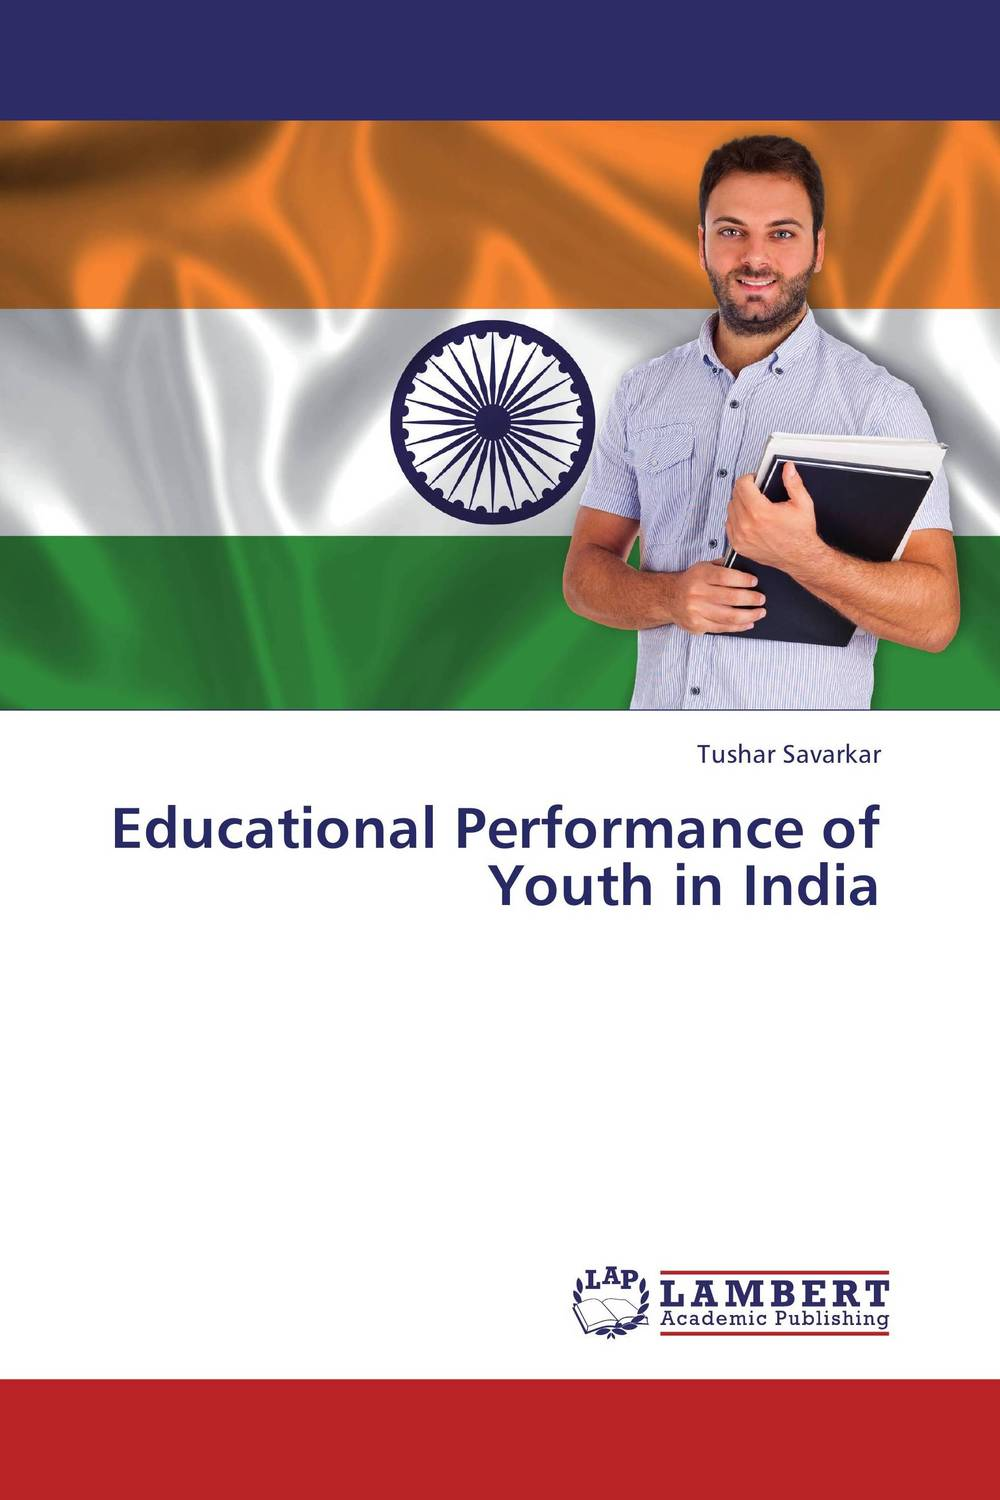 Educational Performance of Youth in India